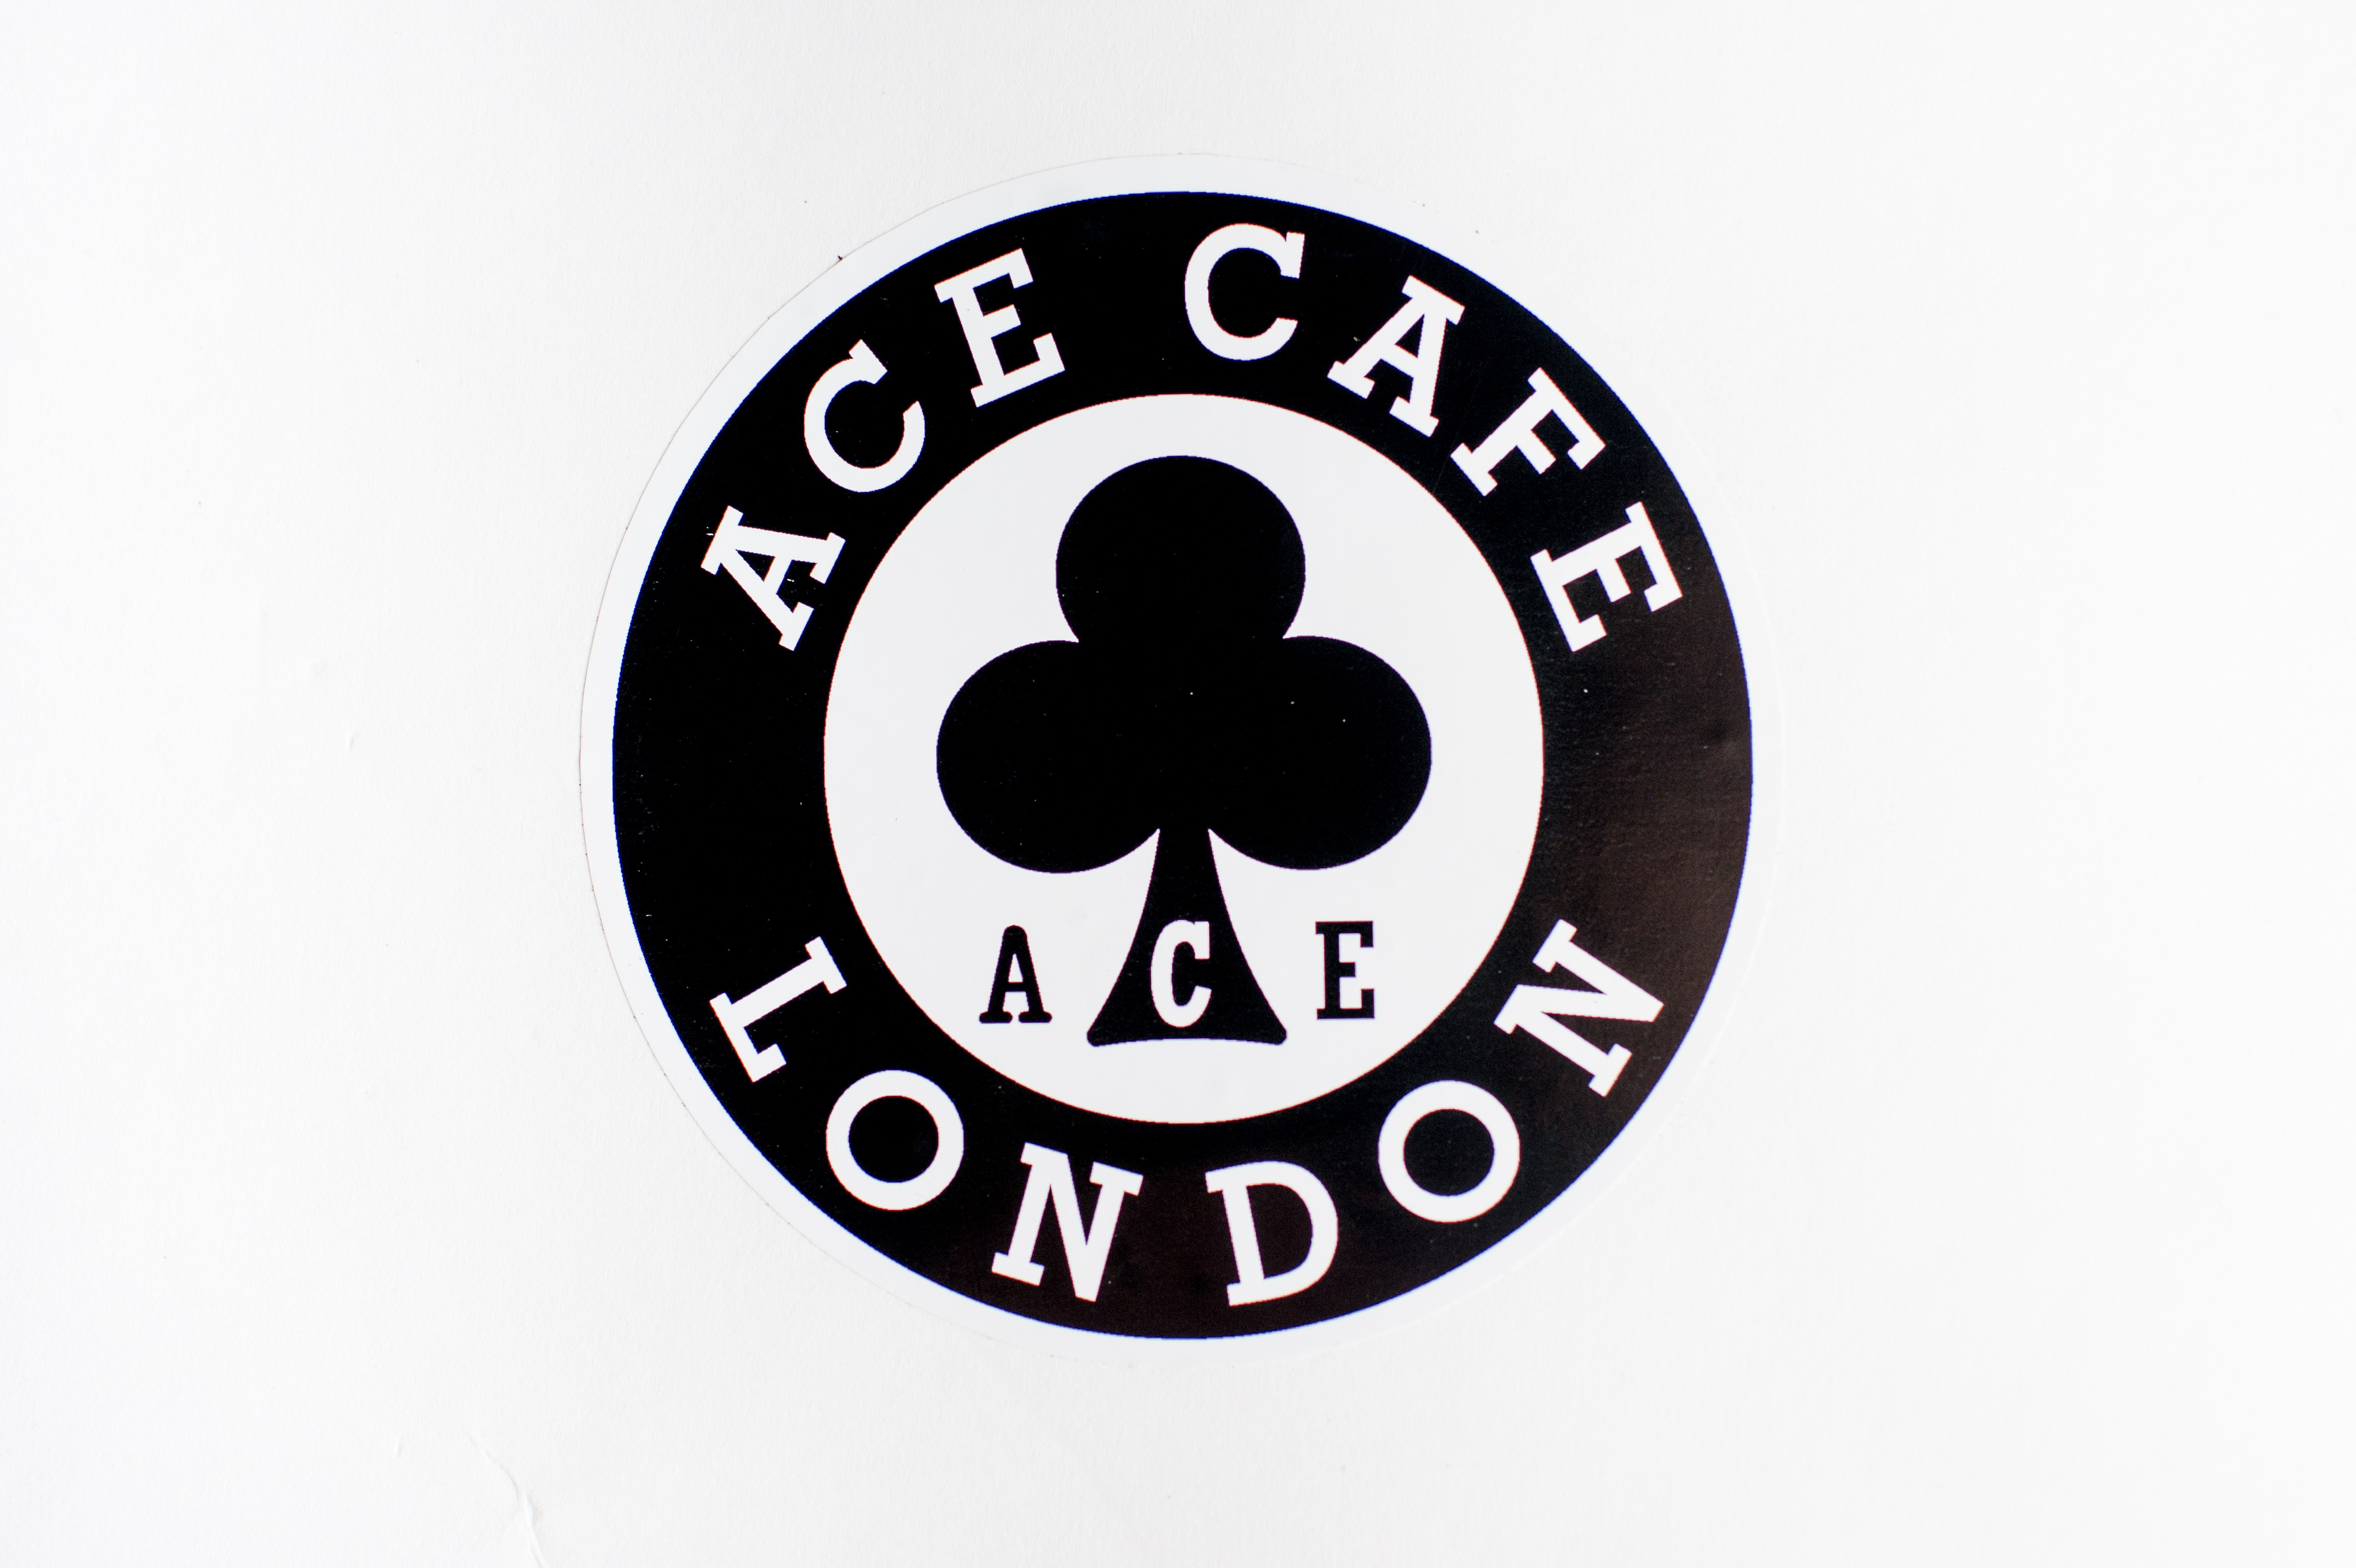 Ace Cafe London Inside Window Sticker